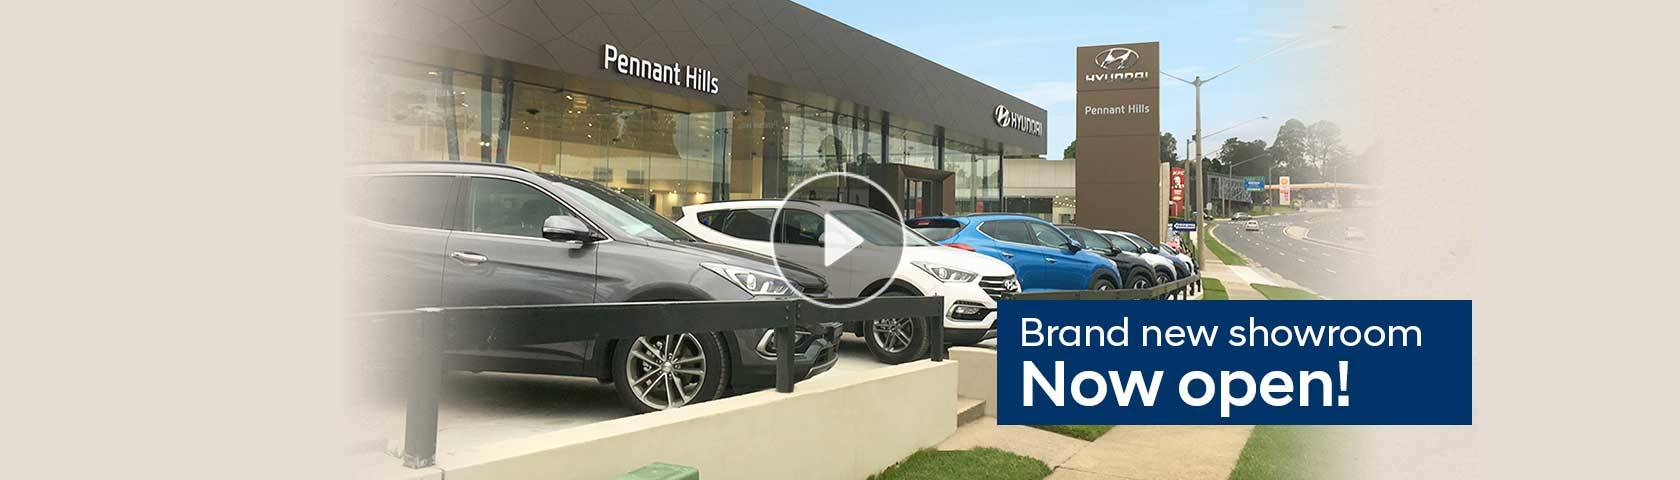 Pennant Hills Brand New Showroom